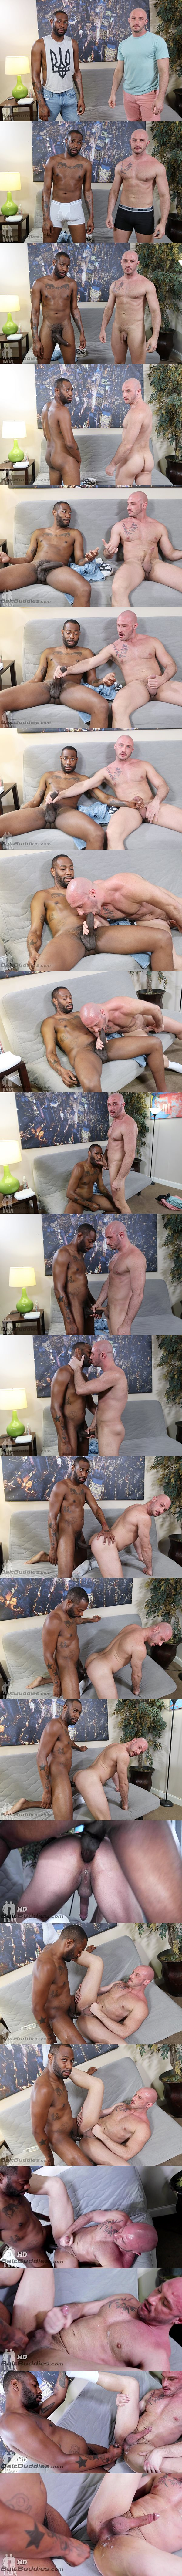 Big-cocked black stud August Alexander barebacks bald muscle daddy Greg Riley in this interracial encounter before he fucks the cum out of Greg at Baitbuddies 01